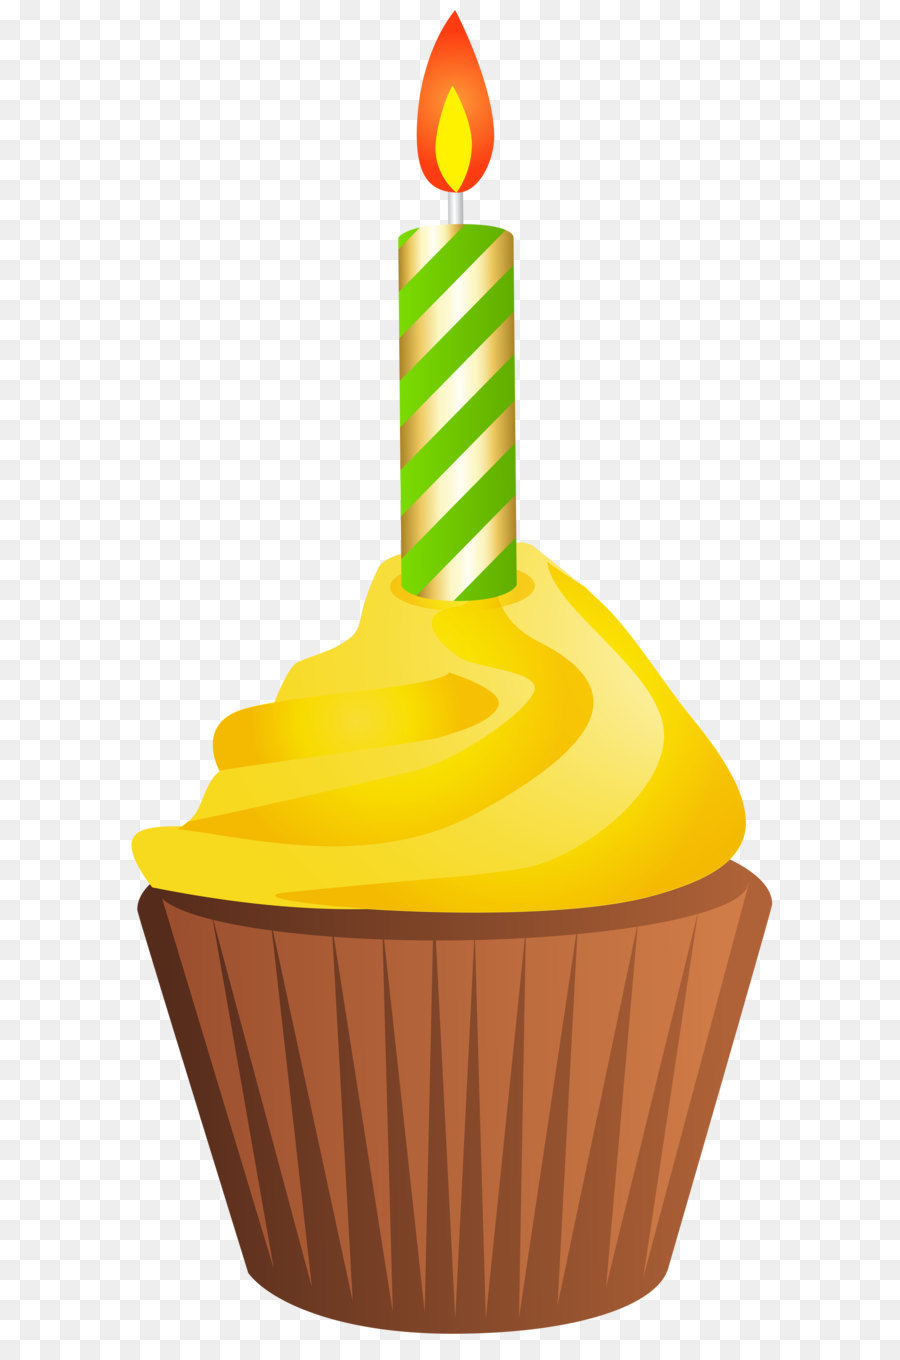 Free birthday download clip. Clipart cake autumn